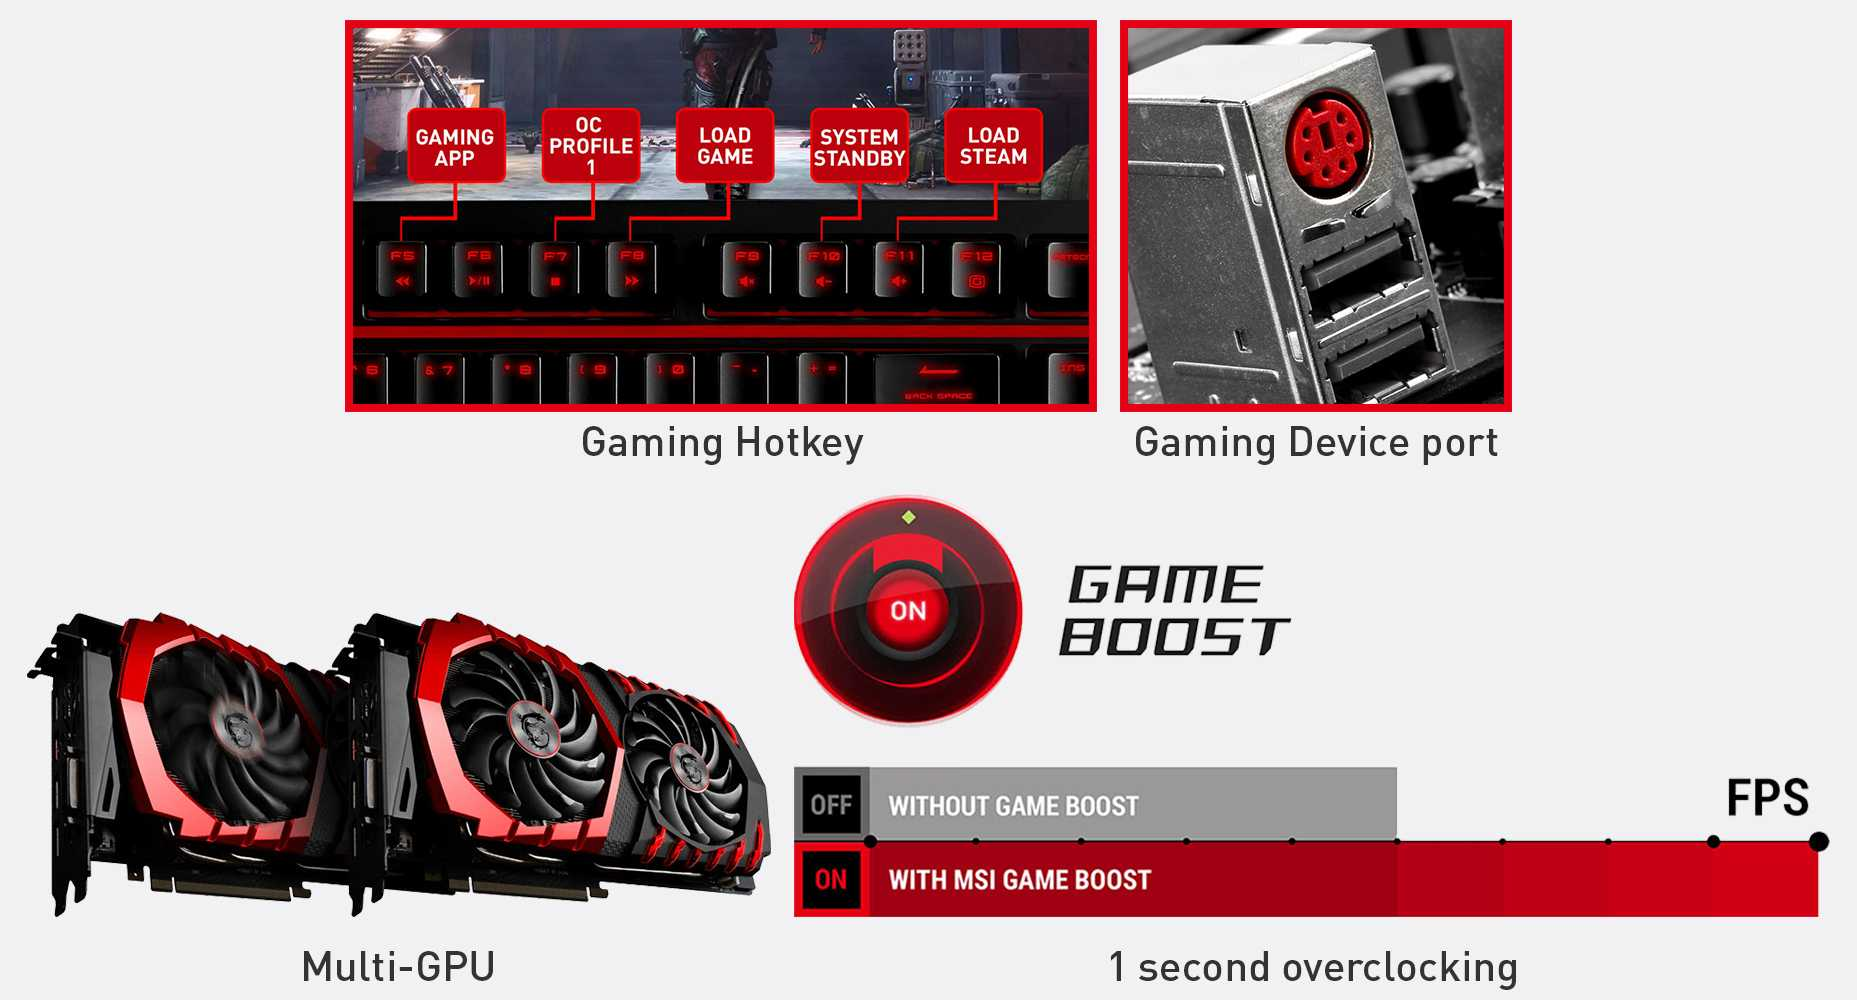 MSI YOUR IN-GAME ADVANTAGE